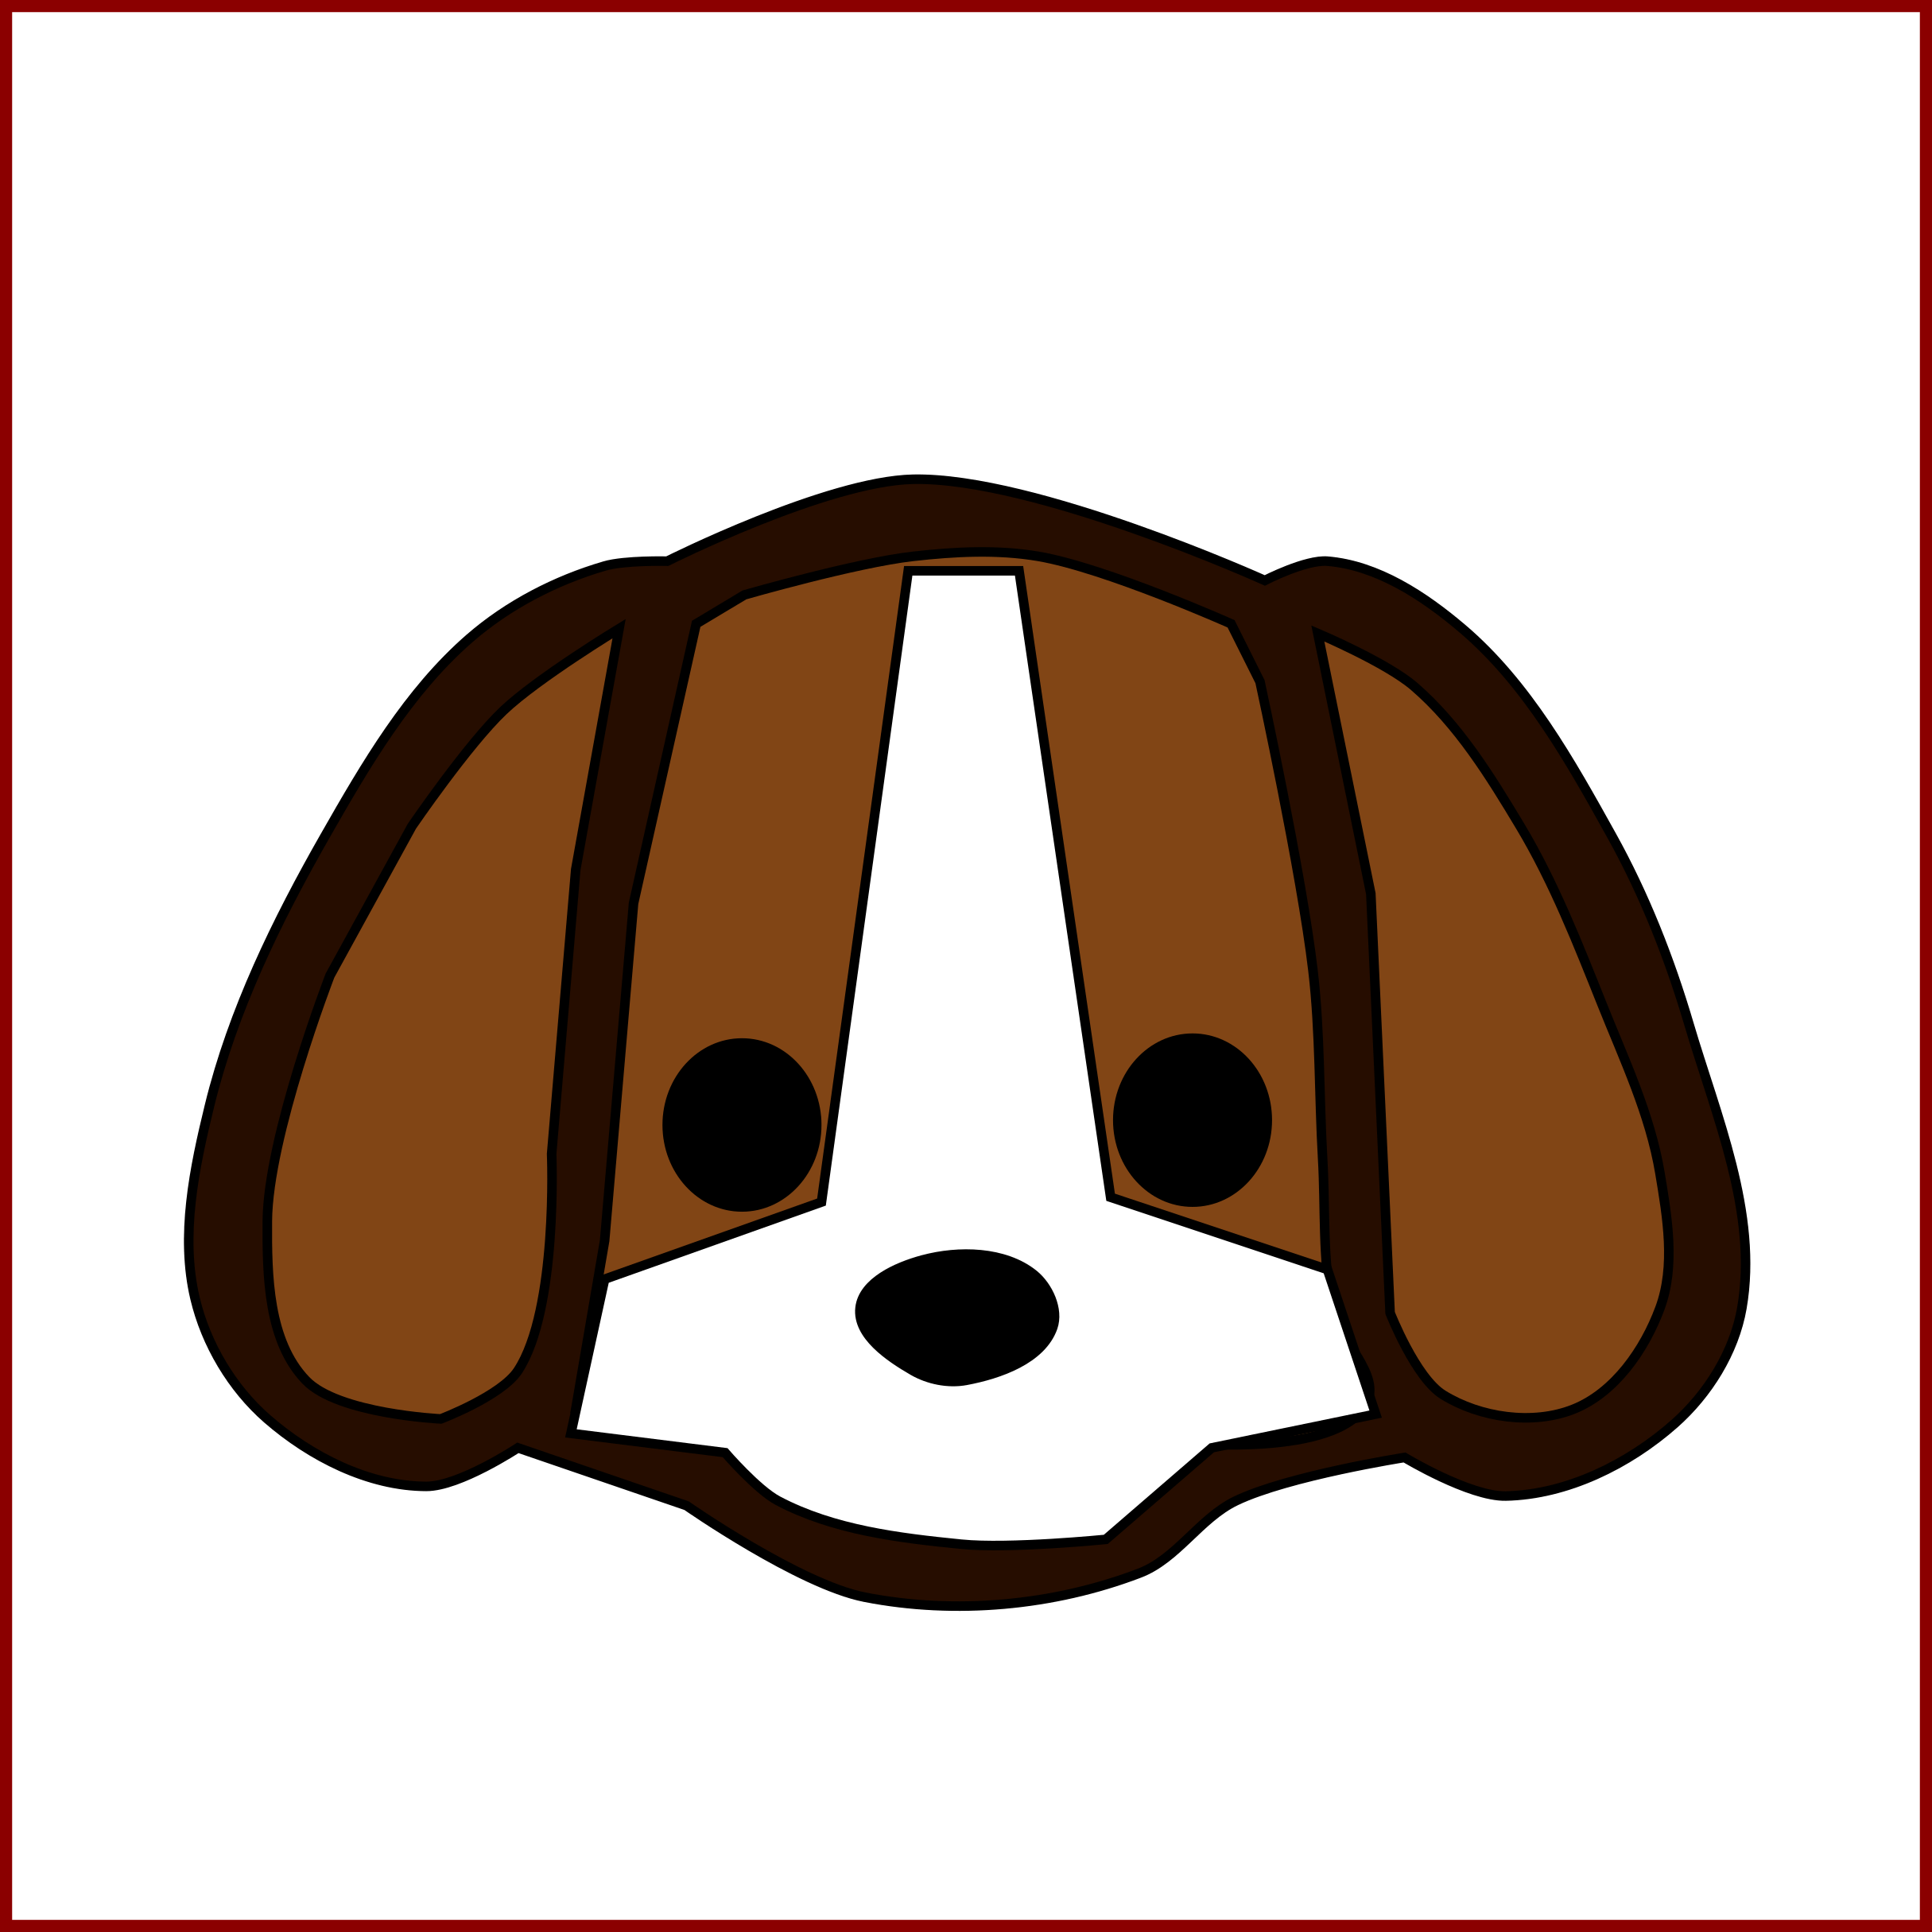 Amazing dog picture for. Dig clipart cartoon